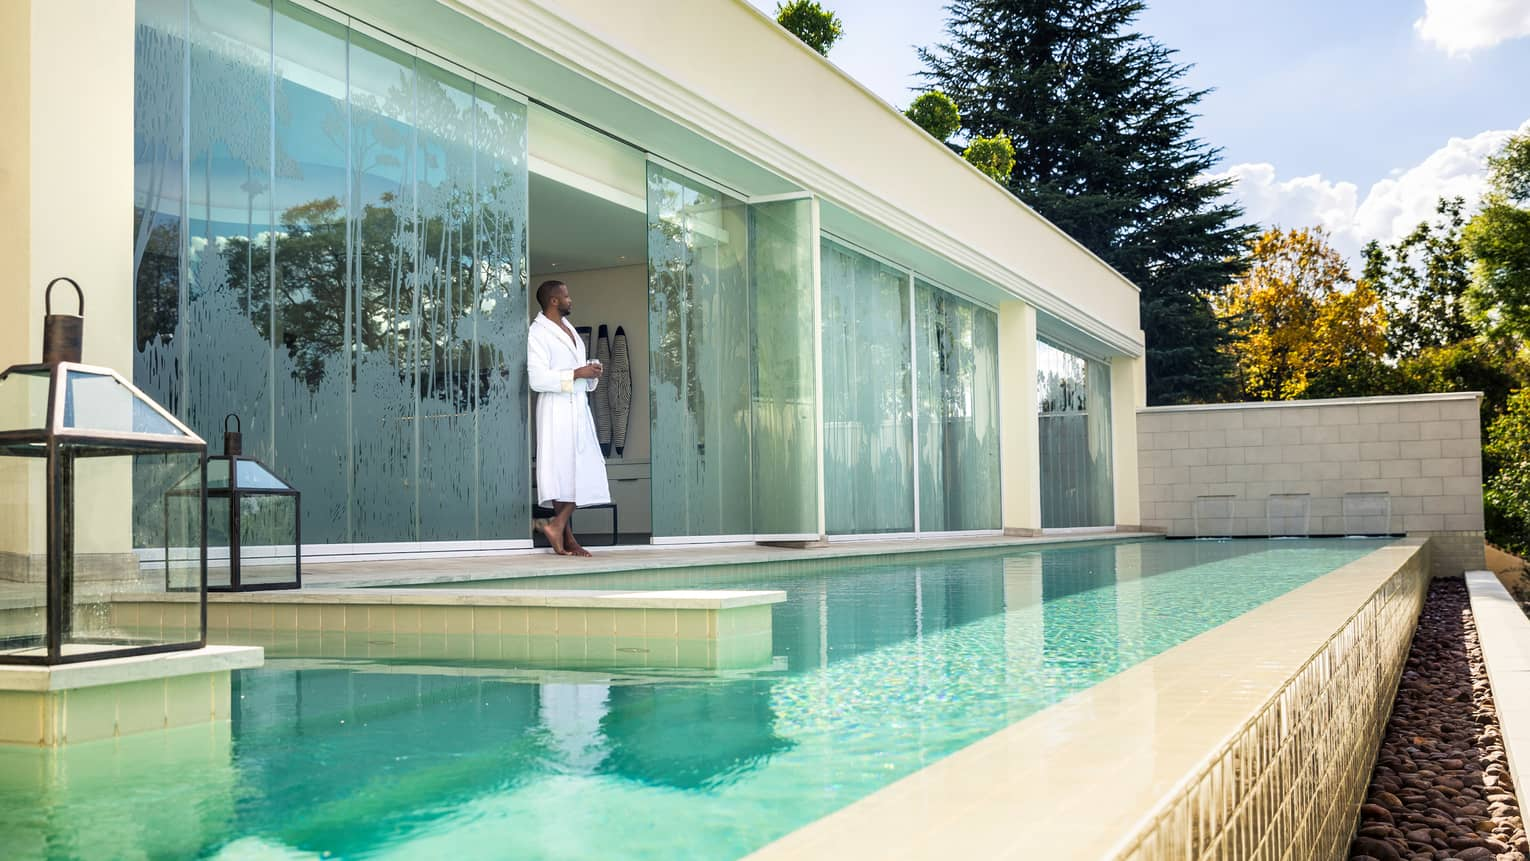 Man in white bathrobe stands between Spa glass windows on swimming pool deck